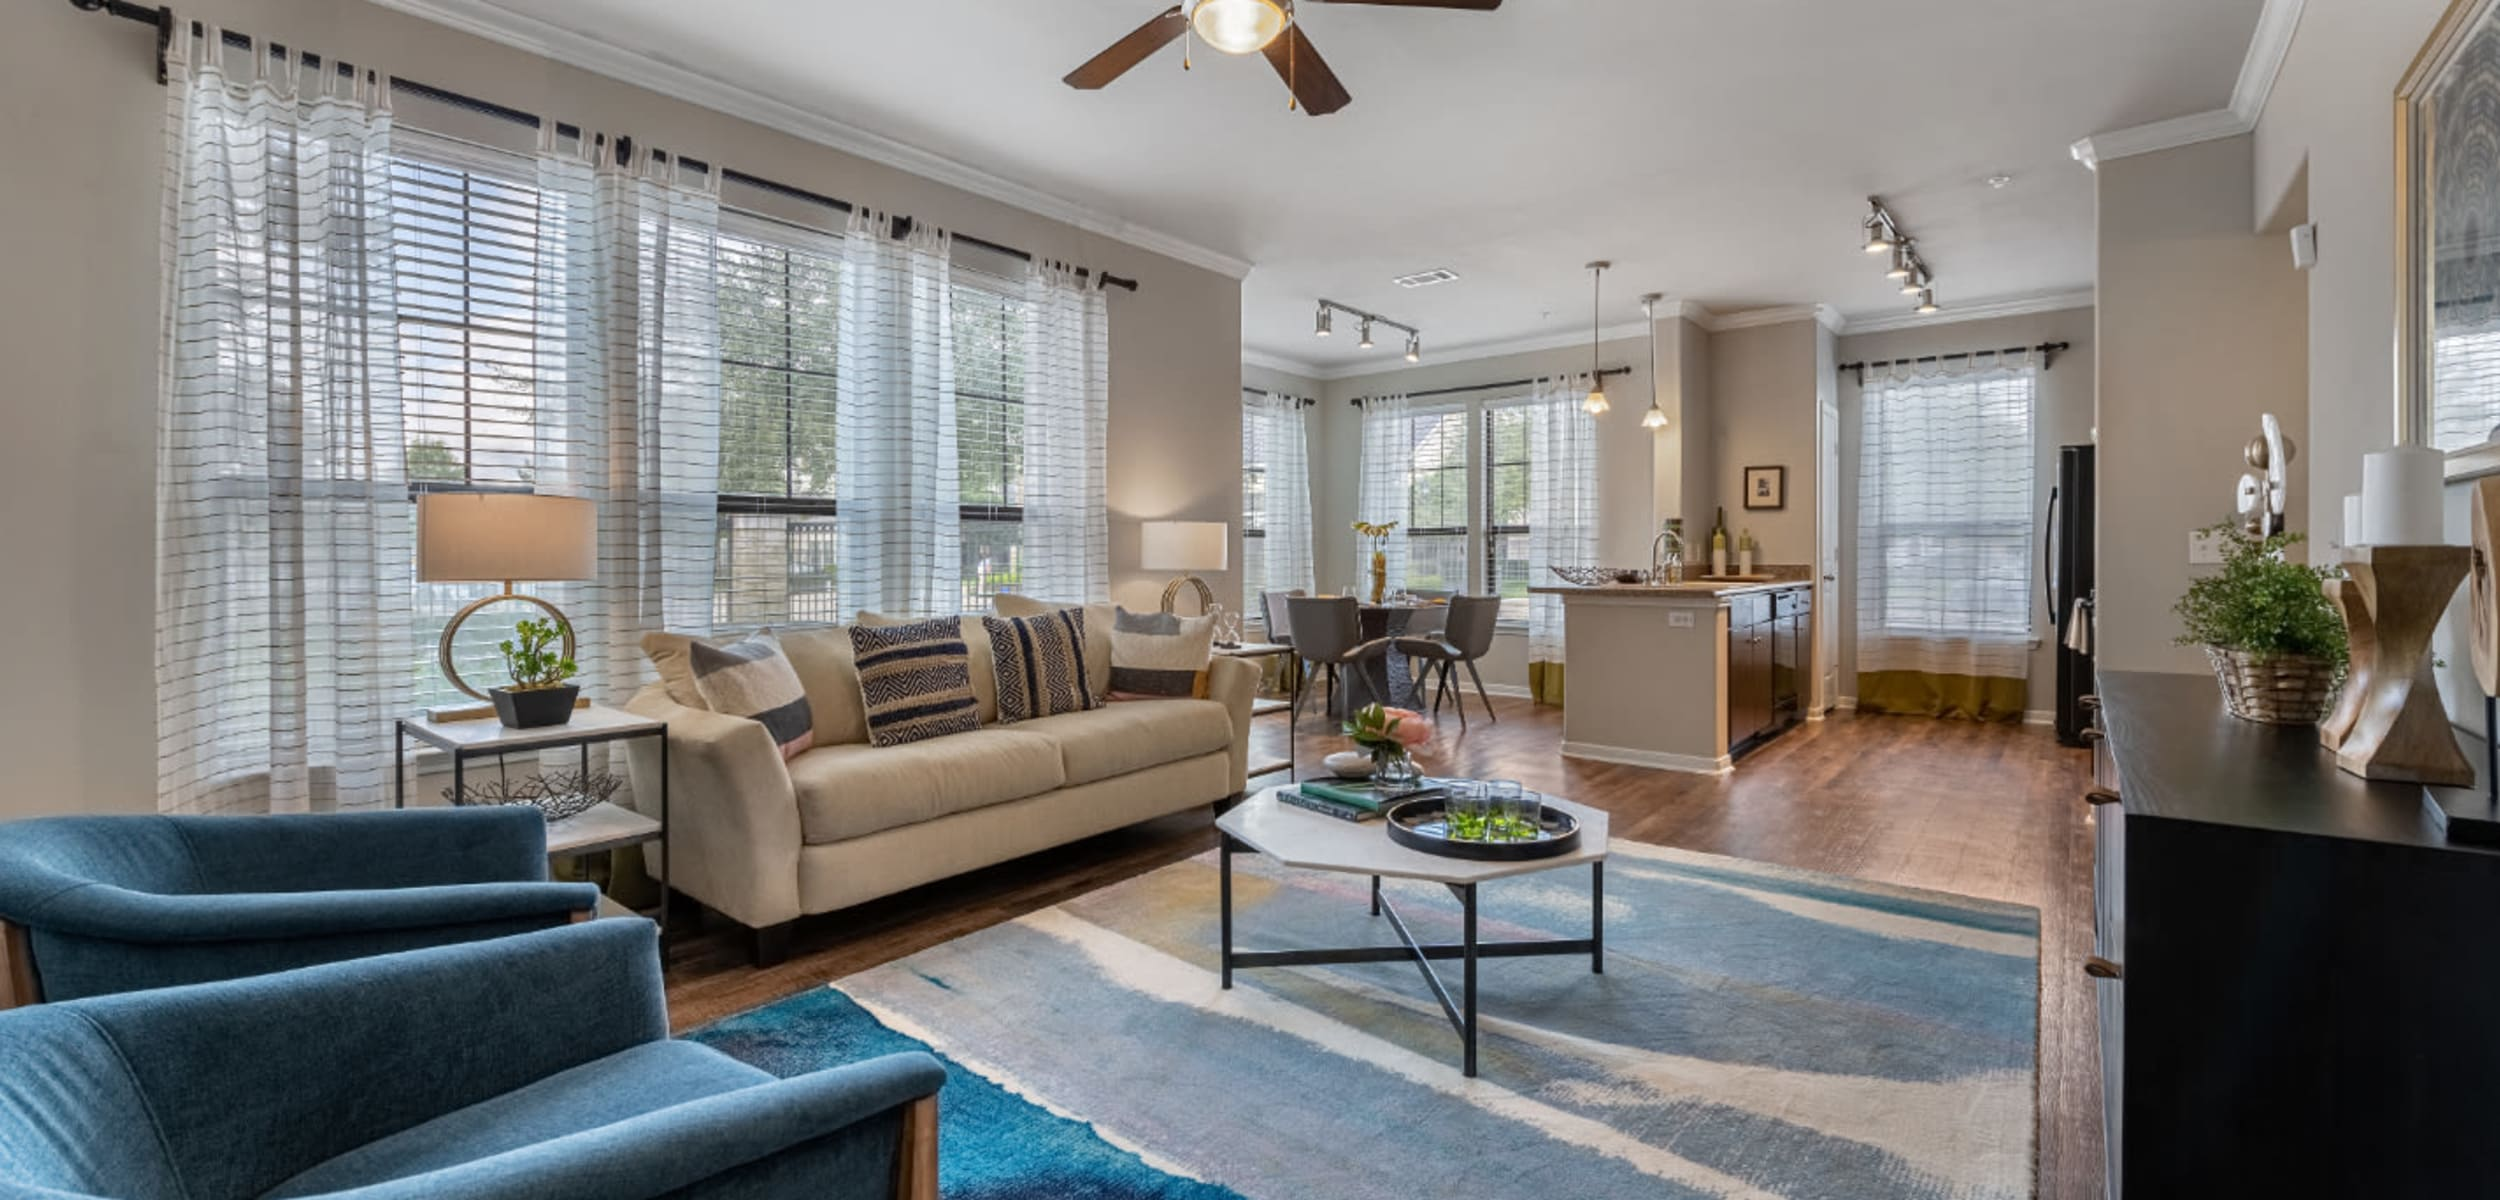 Spacious and comfortable living area overlooking kitchen and dining area at Marquis at Sugar Land in Sugar Land, Texas